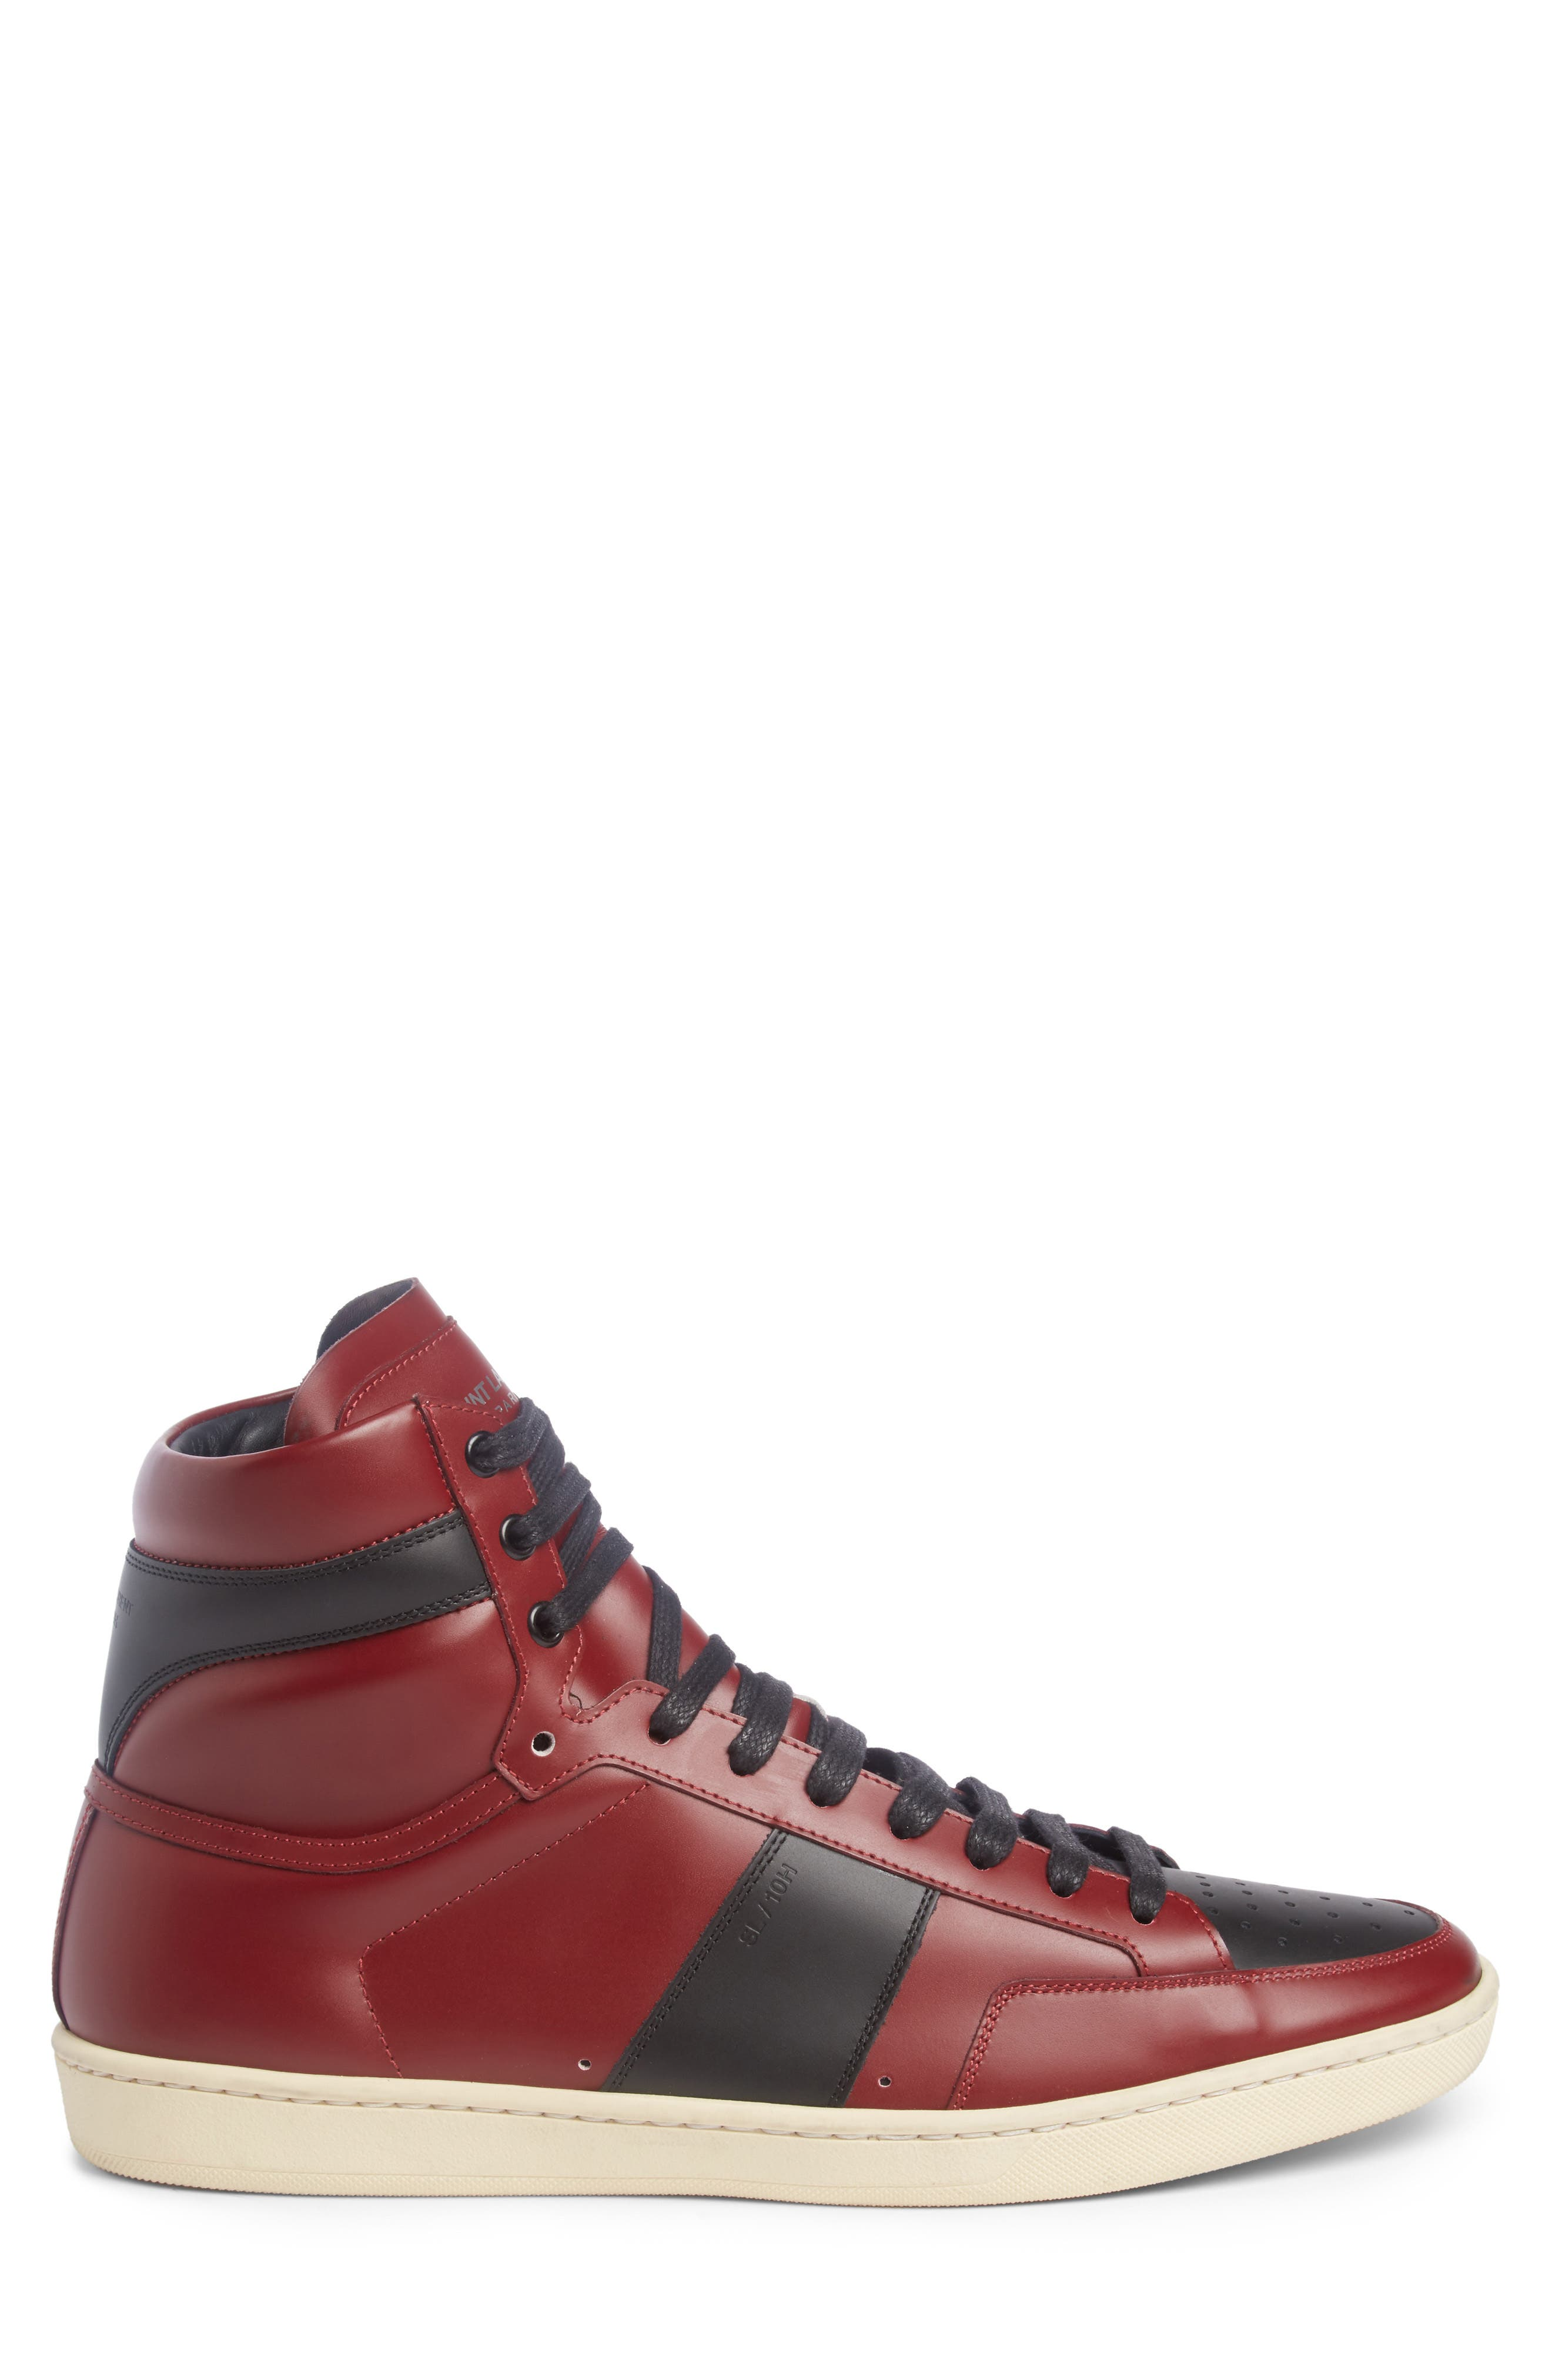 SL/10H Signature Court Classic High-Top Sneaker,                             Alternate thumbnail 3, color,                             Dp Red/ Blk Leather